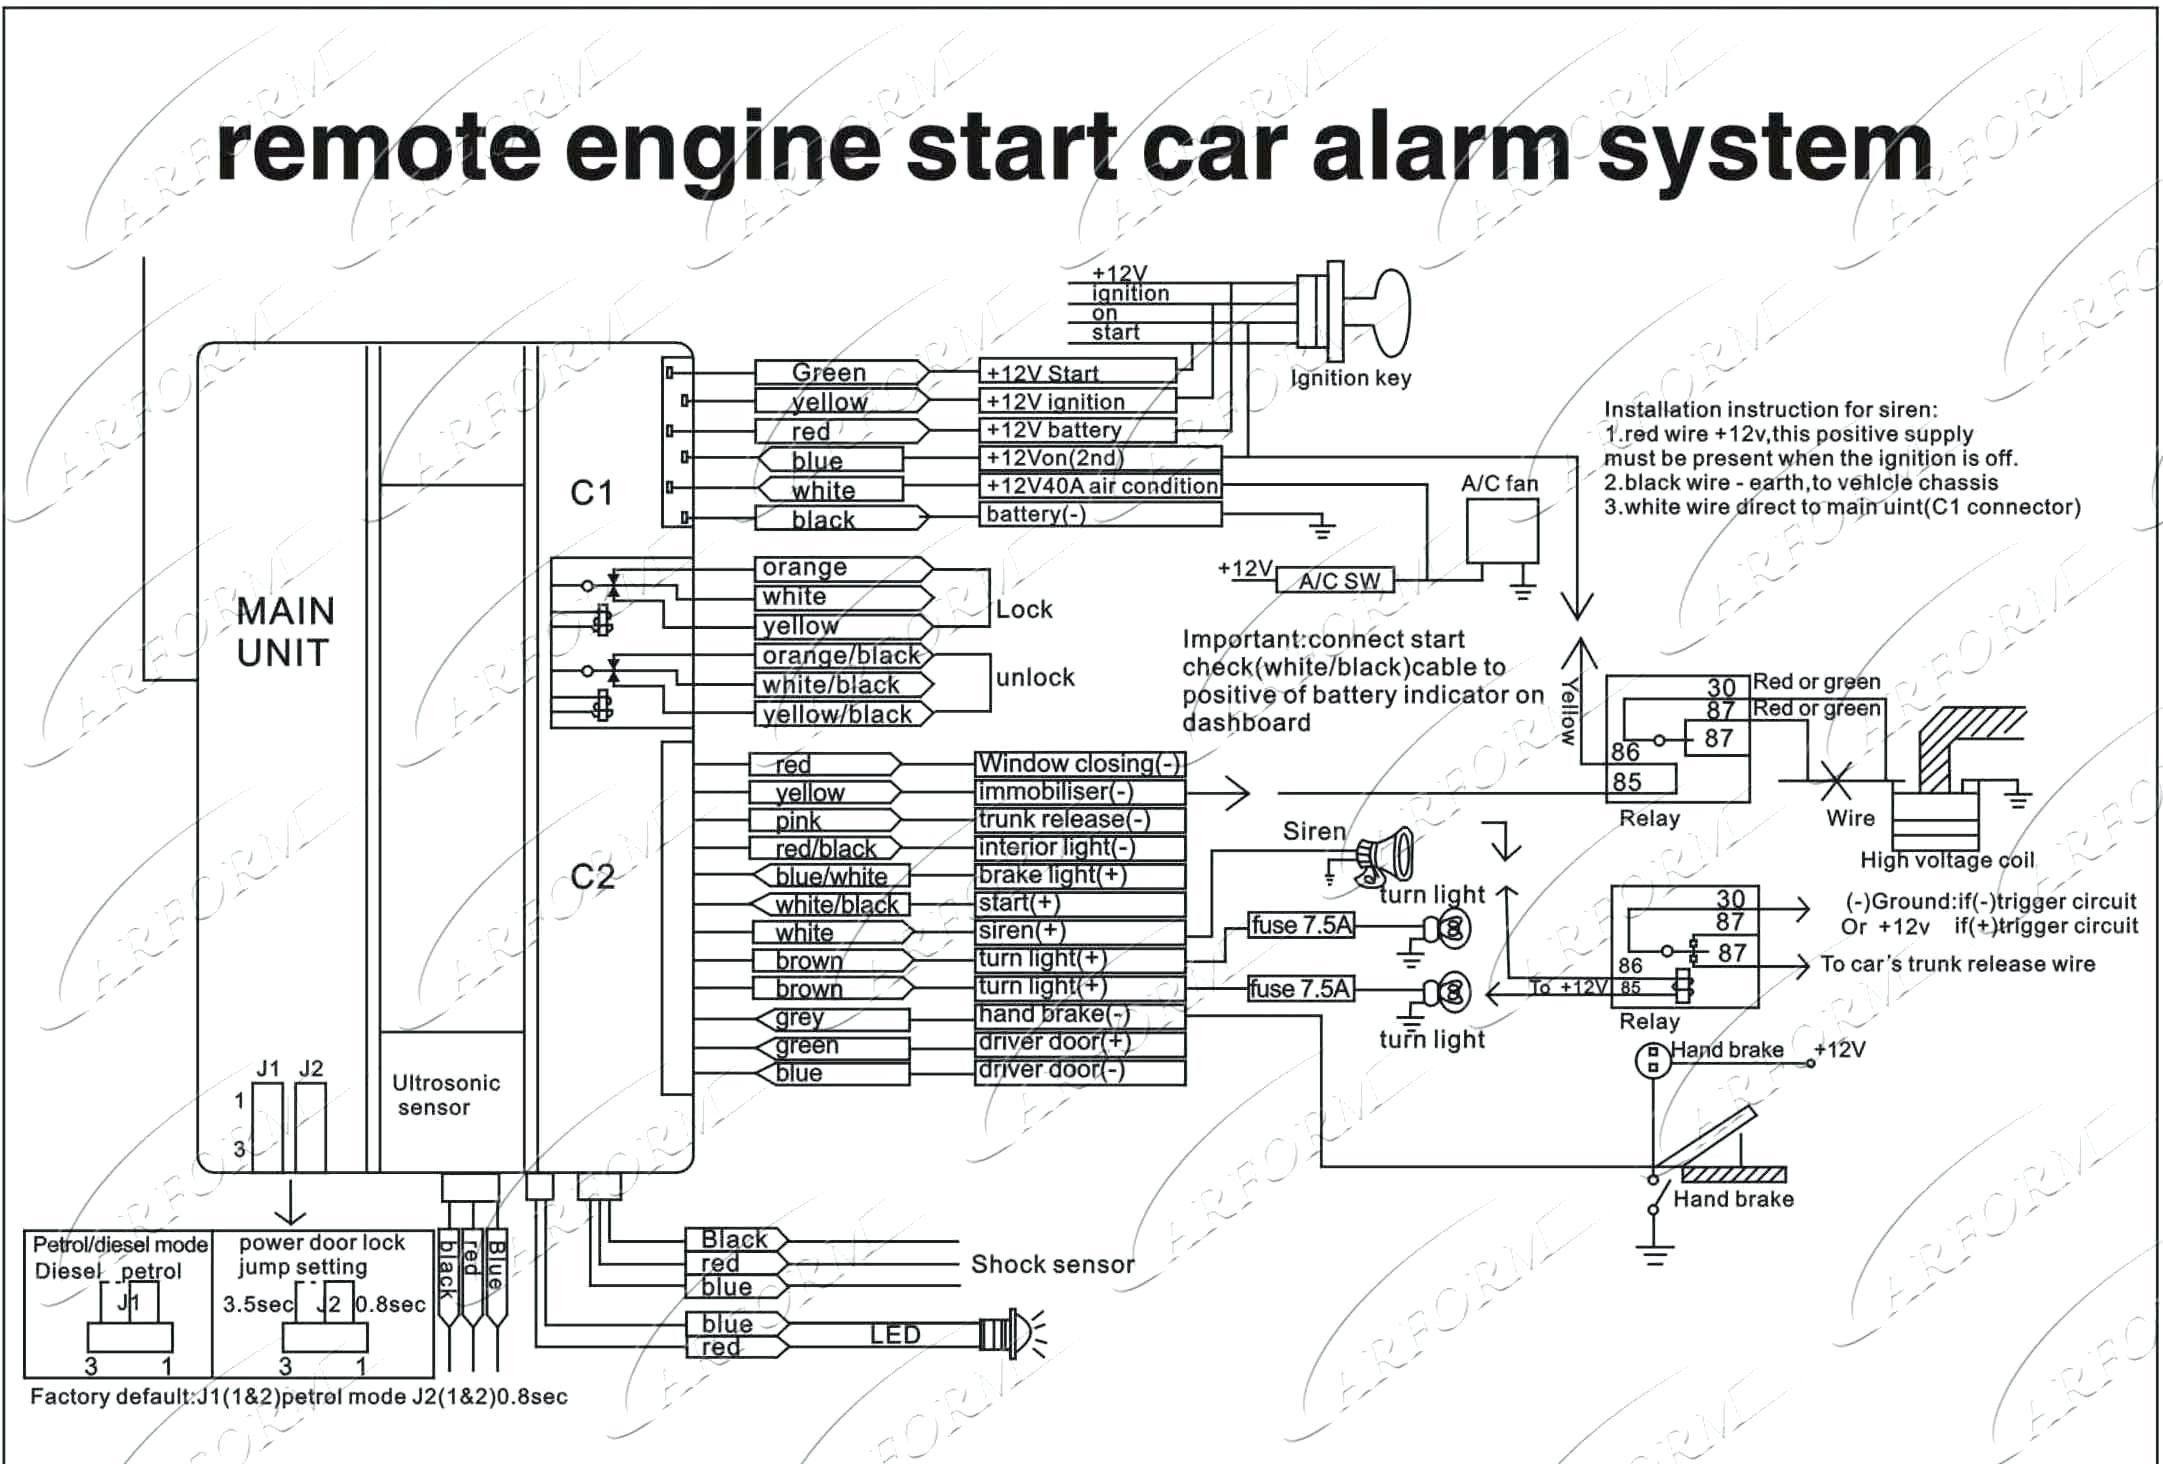 1995 Bmw 325is Bulldog Alarms Wiring Diagrams Wiring Diagram Snow Central Snow Central Gobep It